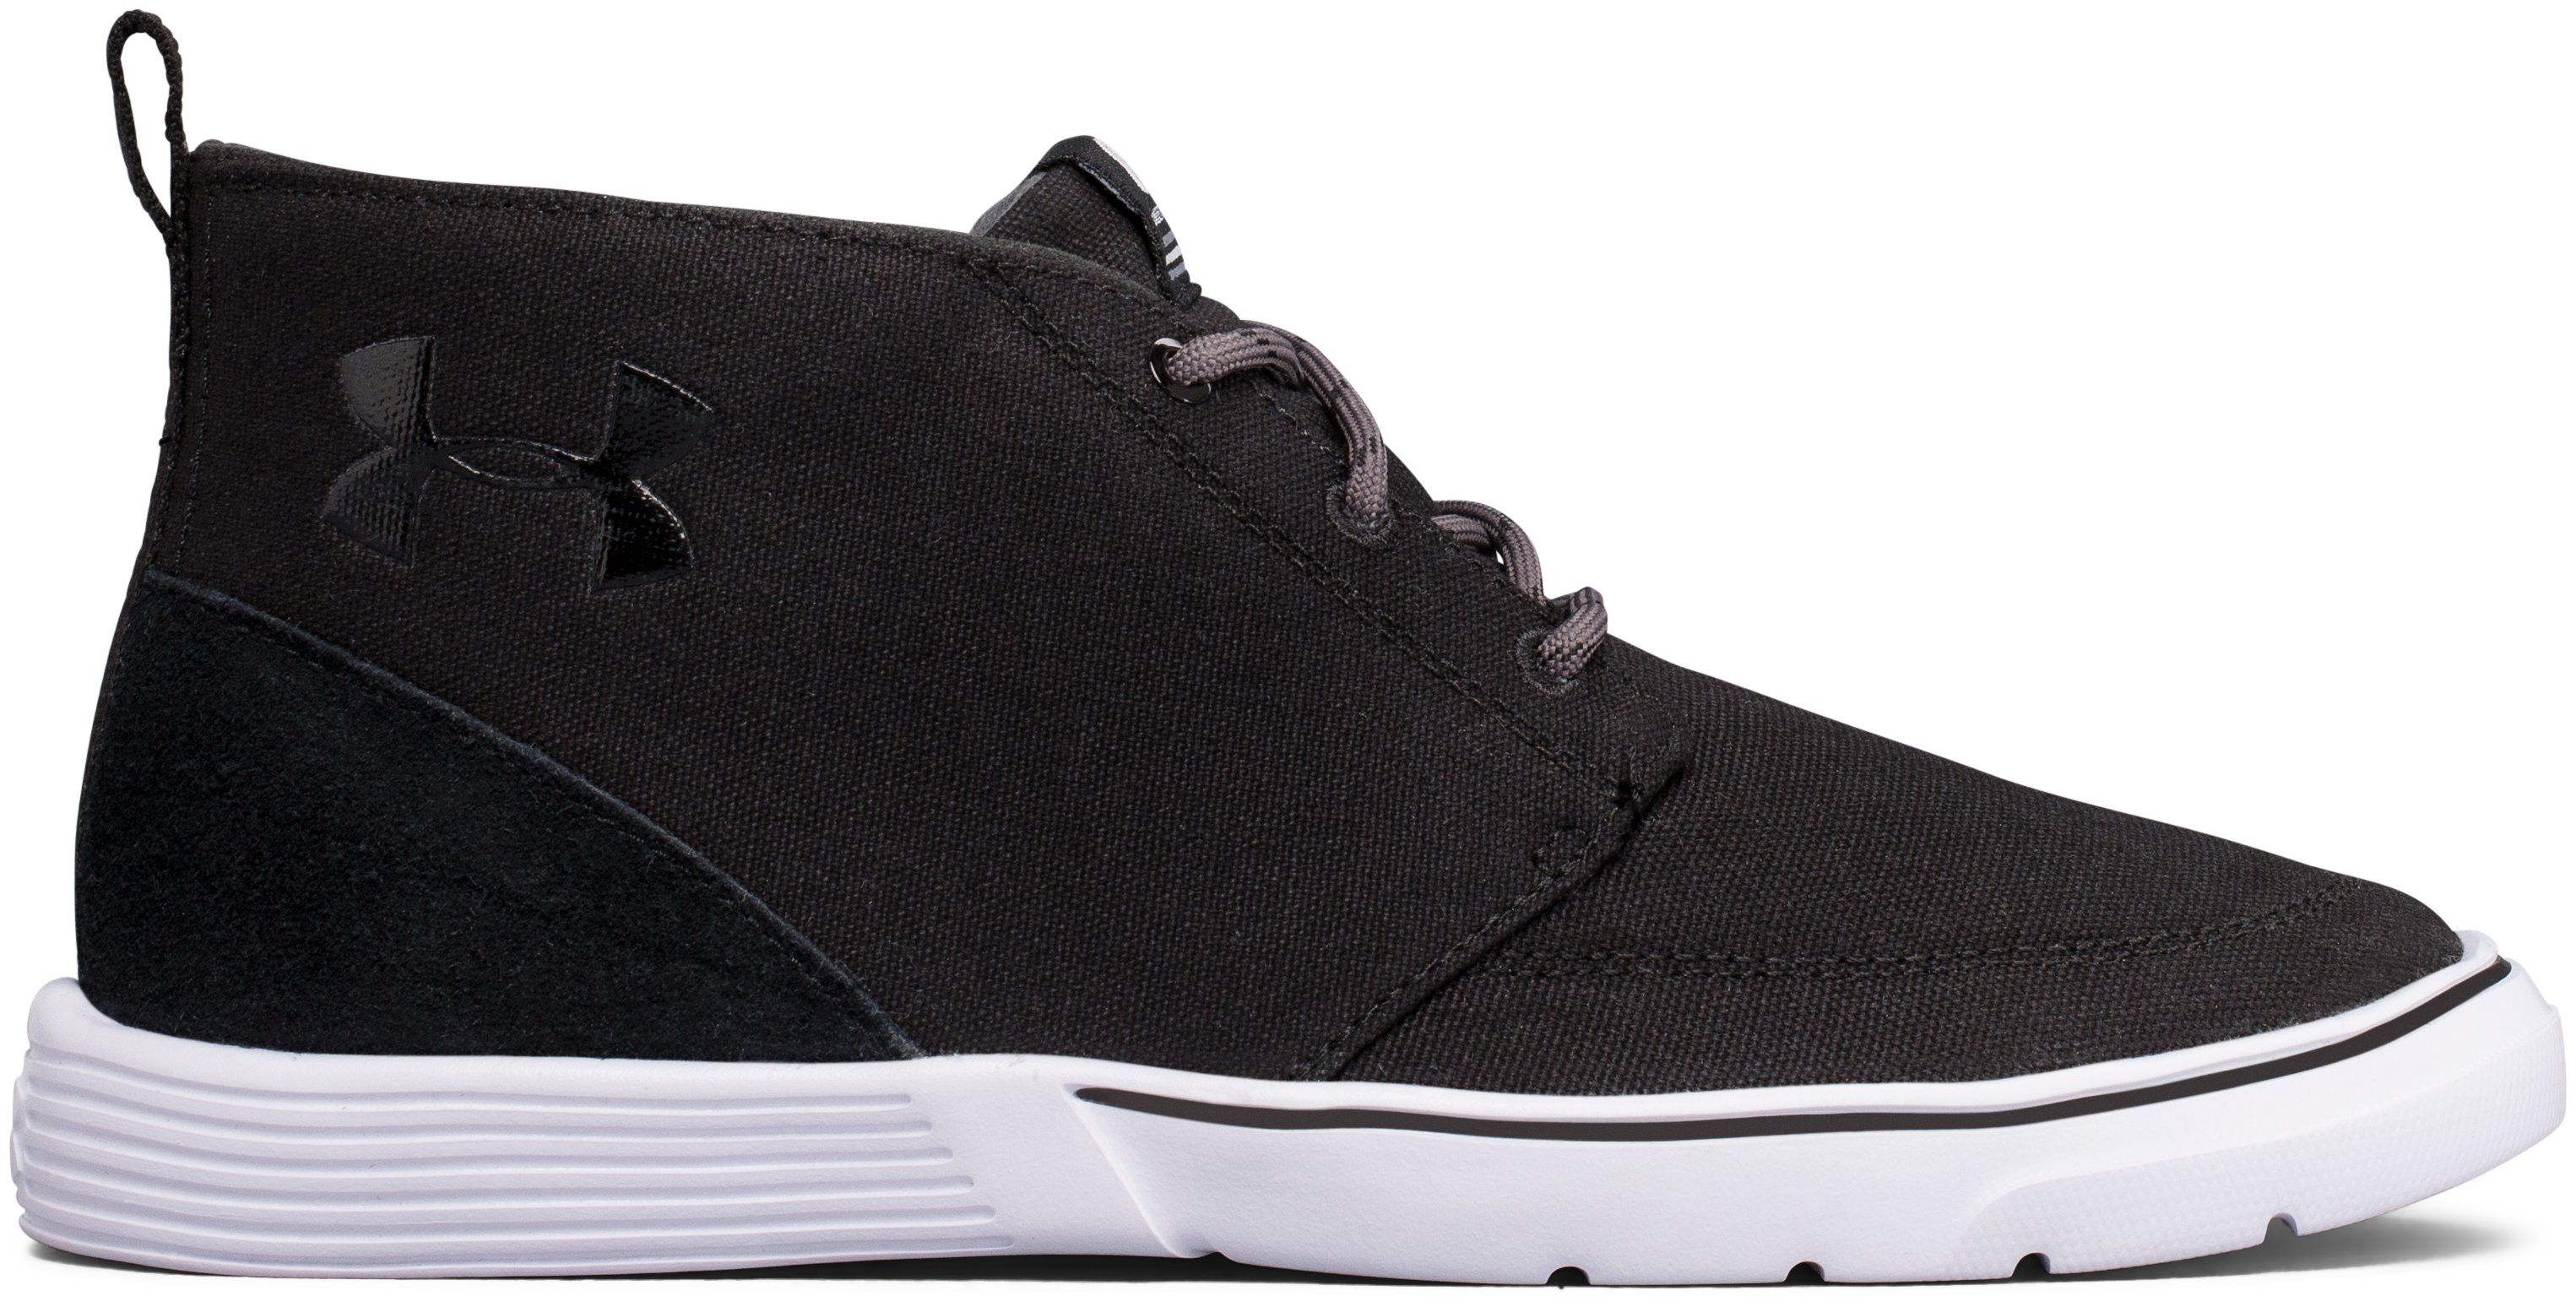 Boys' UA Street Encounter Mid Shoes, Black